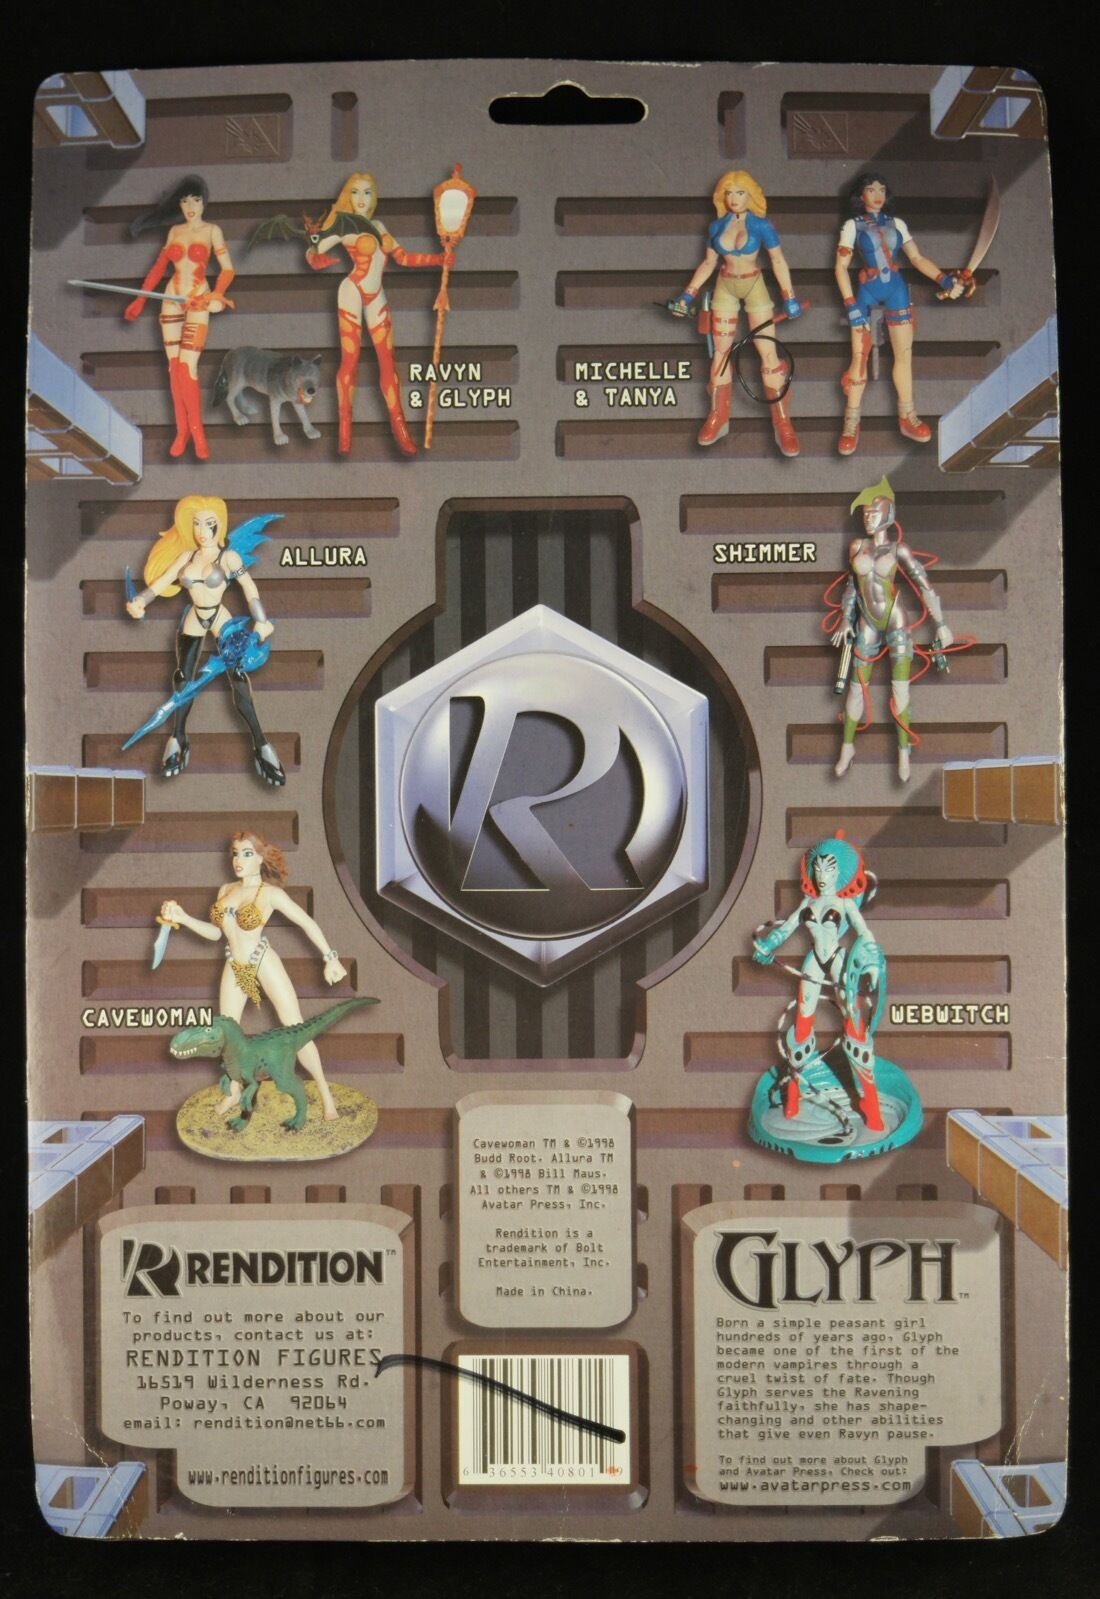 Rendition GLYPH 18cm figure from the comic book series THE